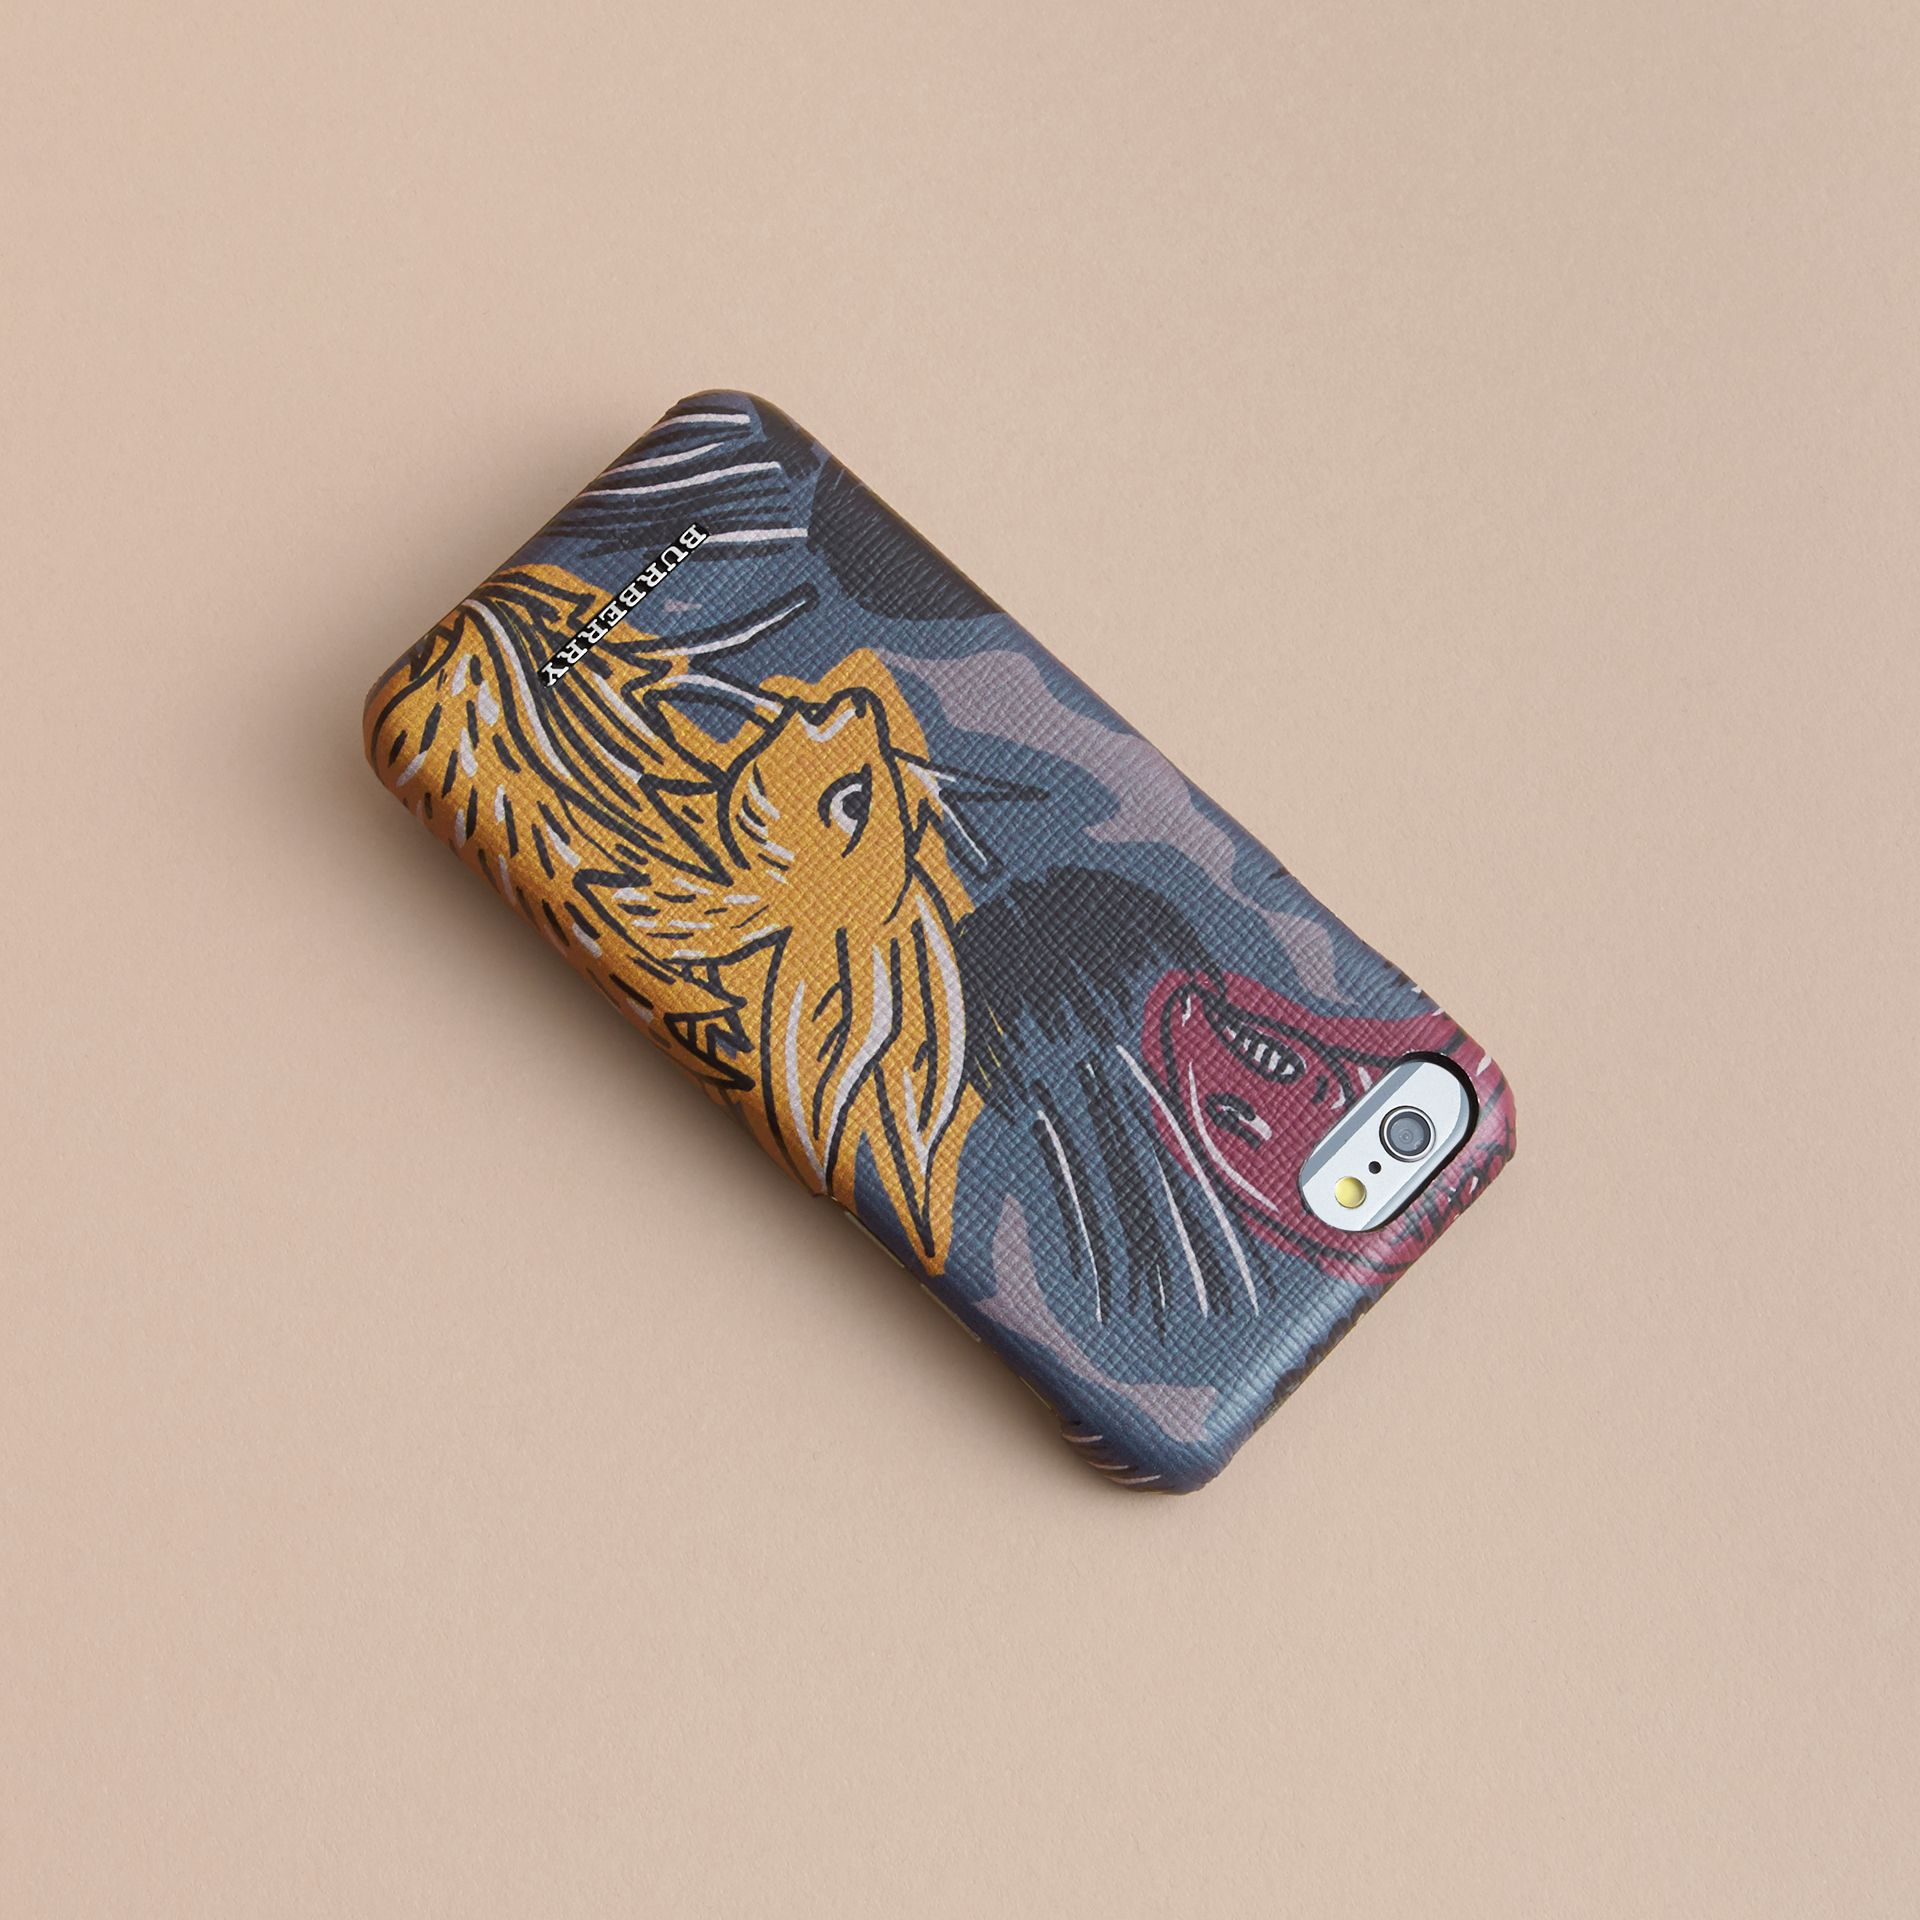 Beasts Print London Leather iPhone 7 Case - Men | Burberry - gallery image 4